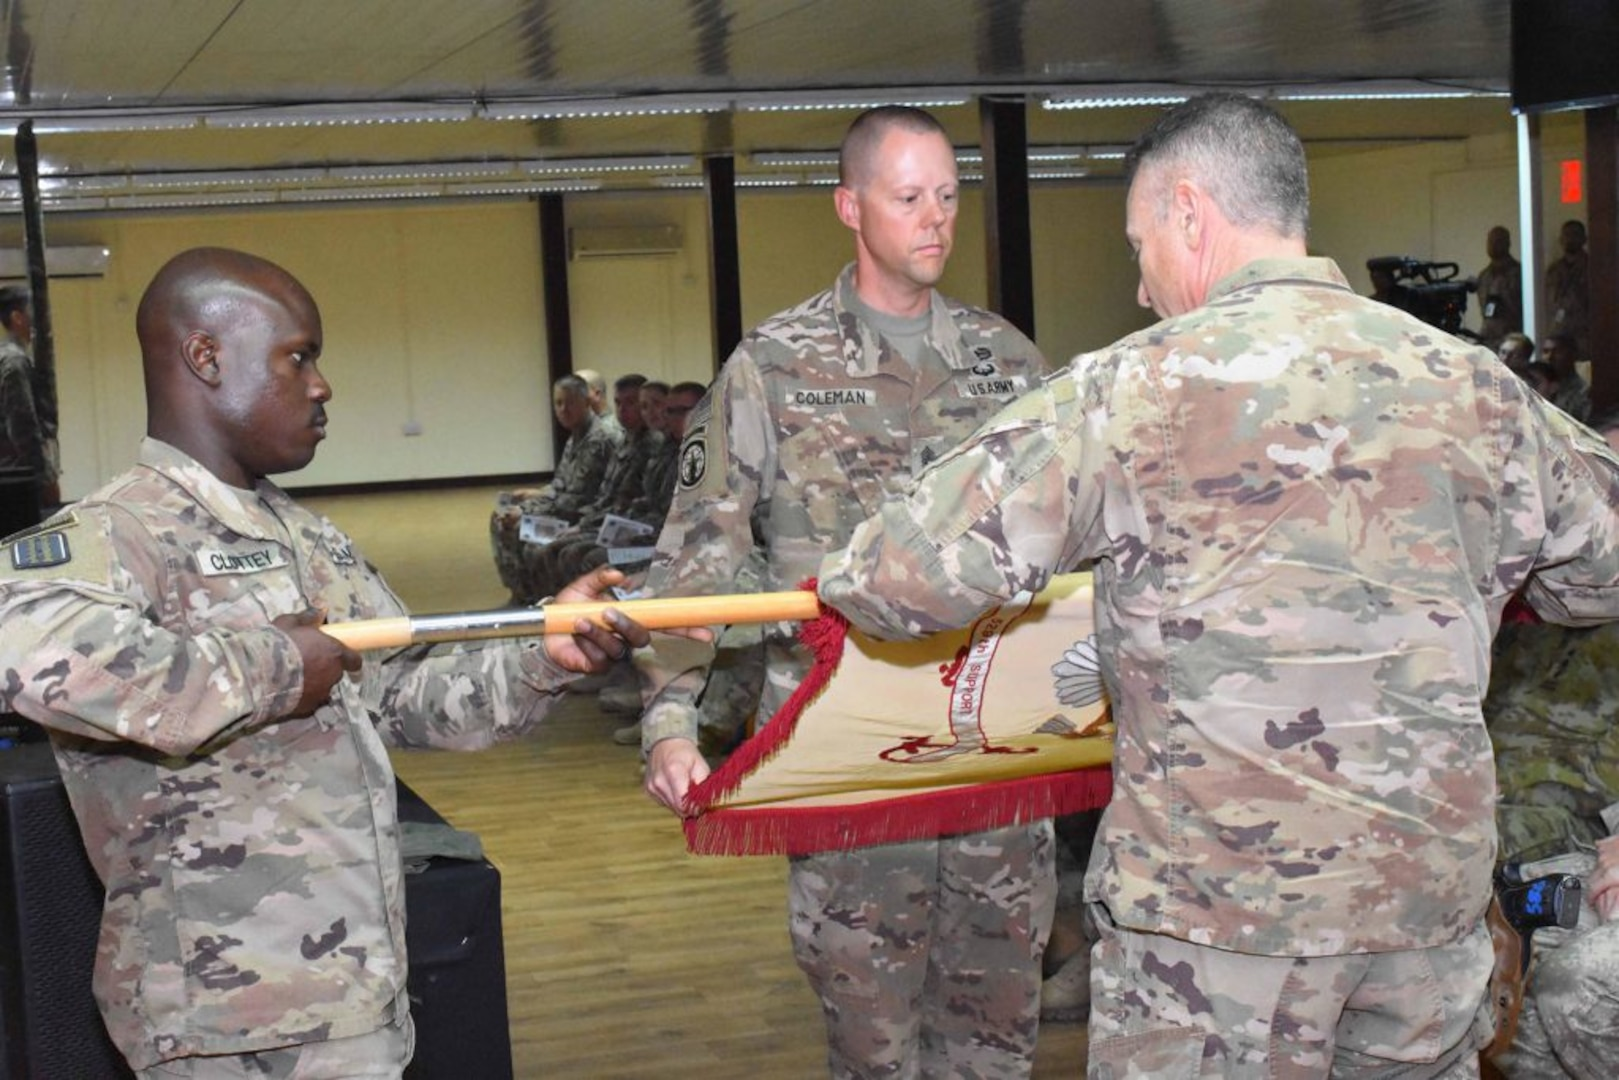 529th CSSB returns from federal active duty